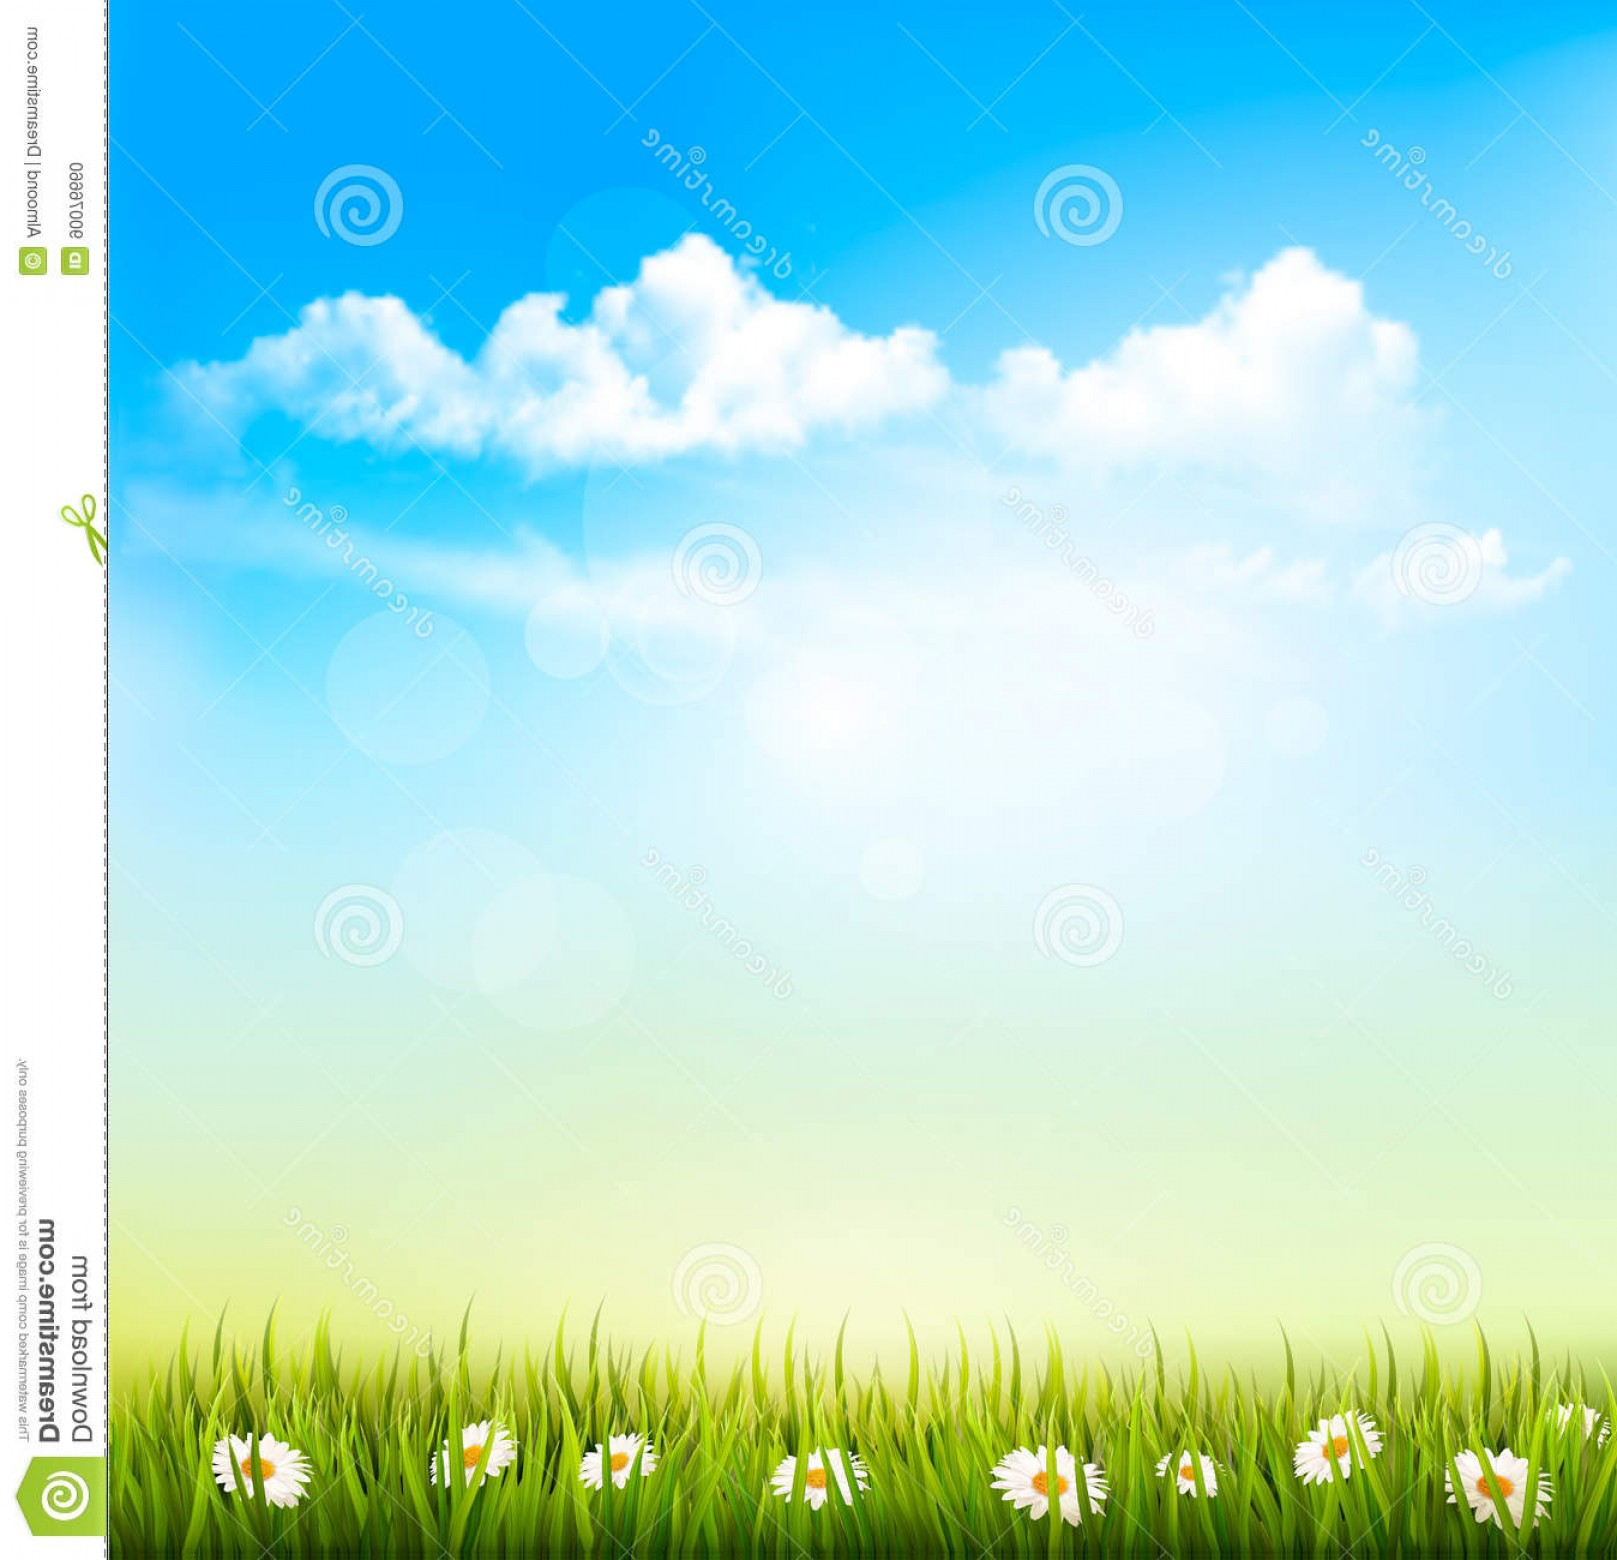 Vector Natural Background Sky: Stock Photo Spring Nature Background Green Grass Blue Sky Clouds Vector Image